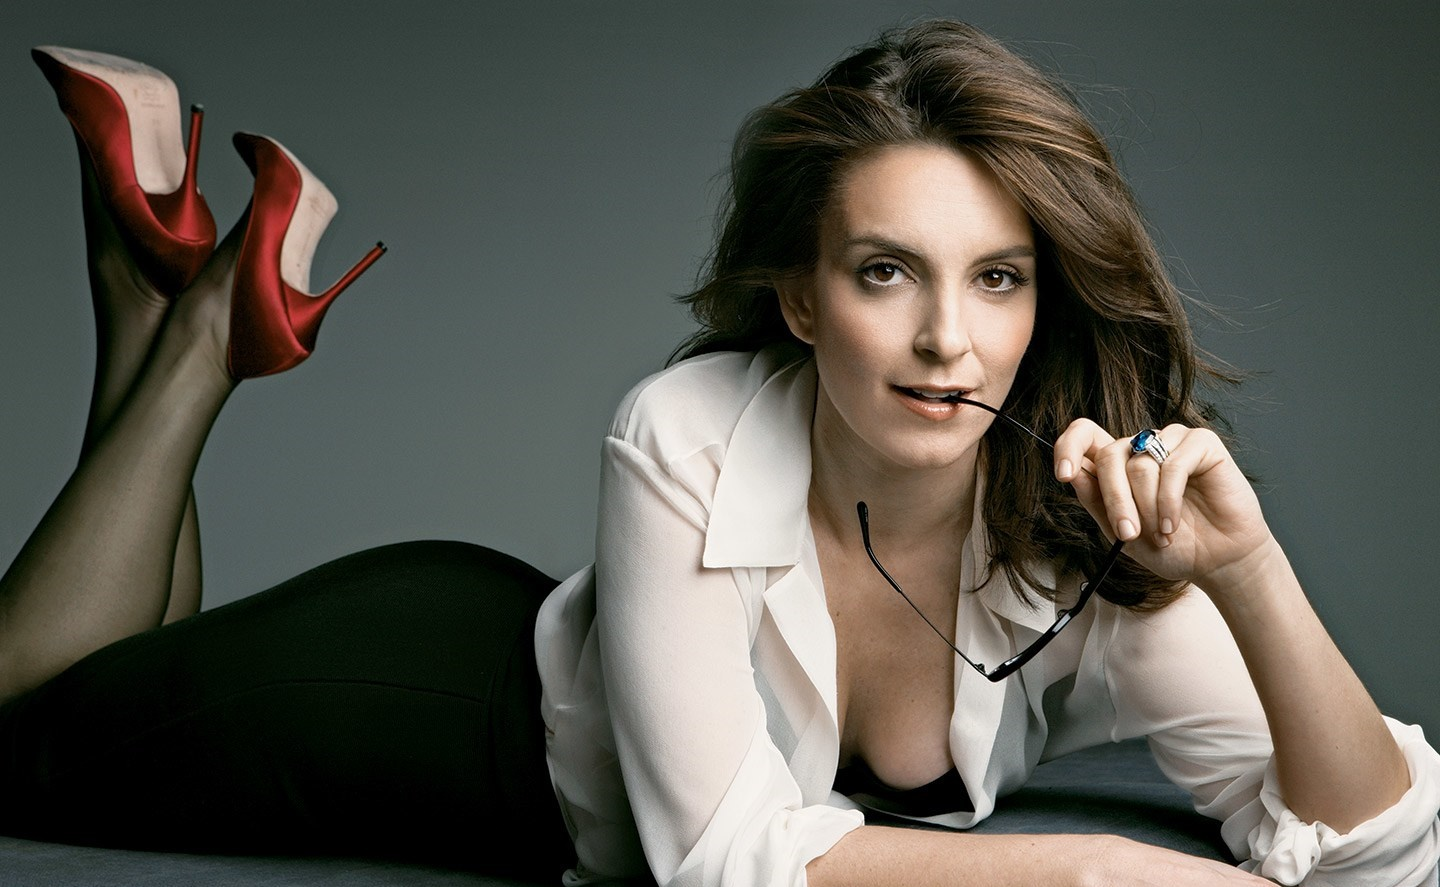 Tina Fey Hot Topless Images, Videos And Sexy Pics